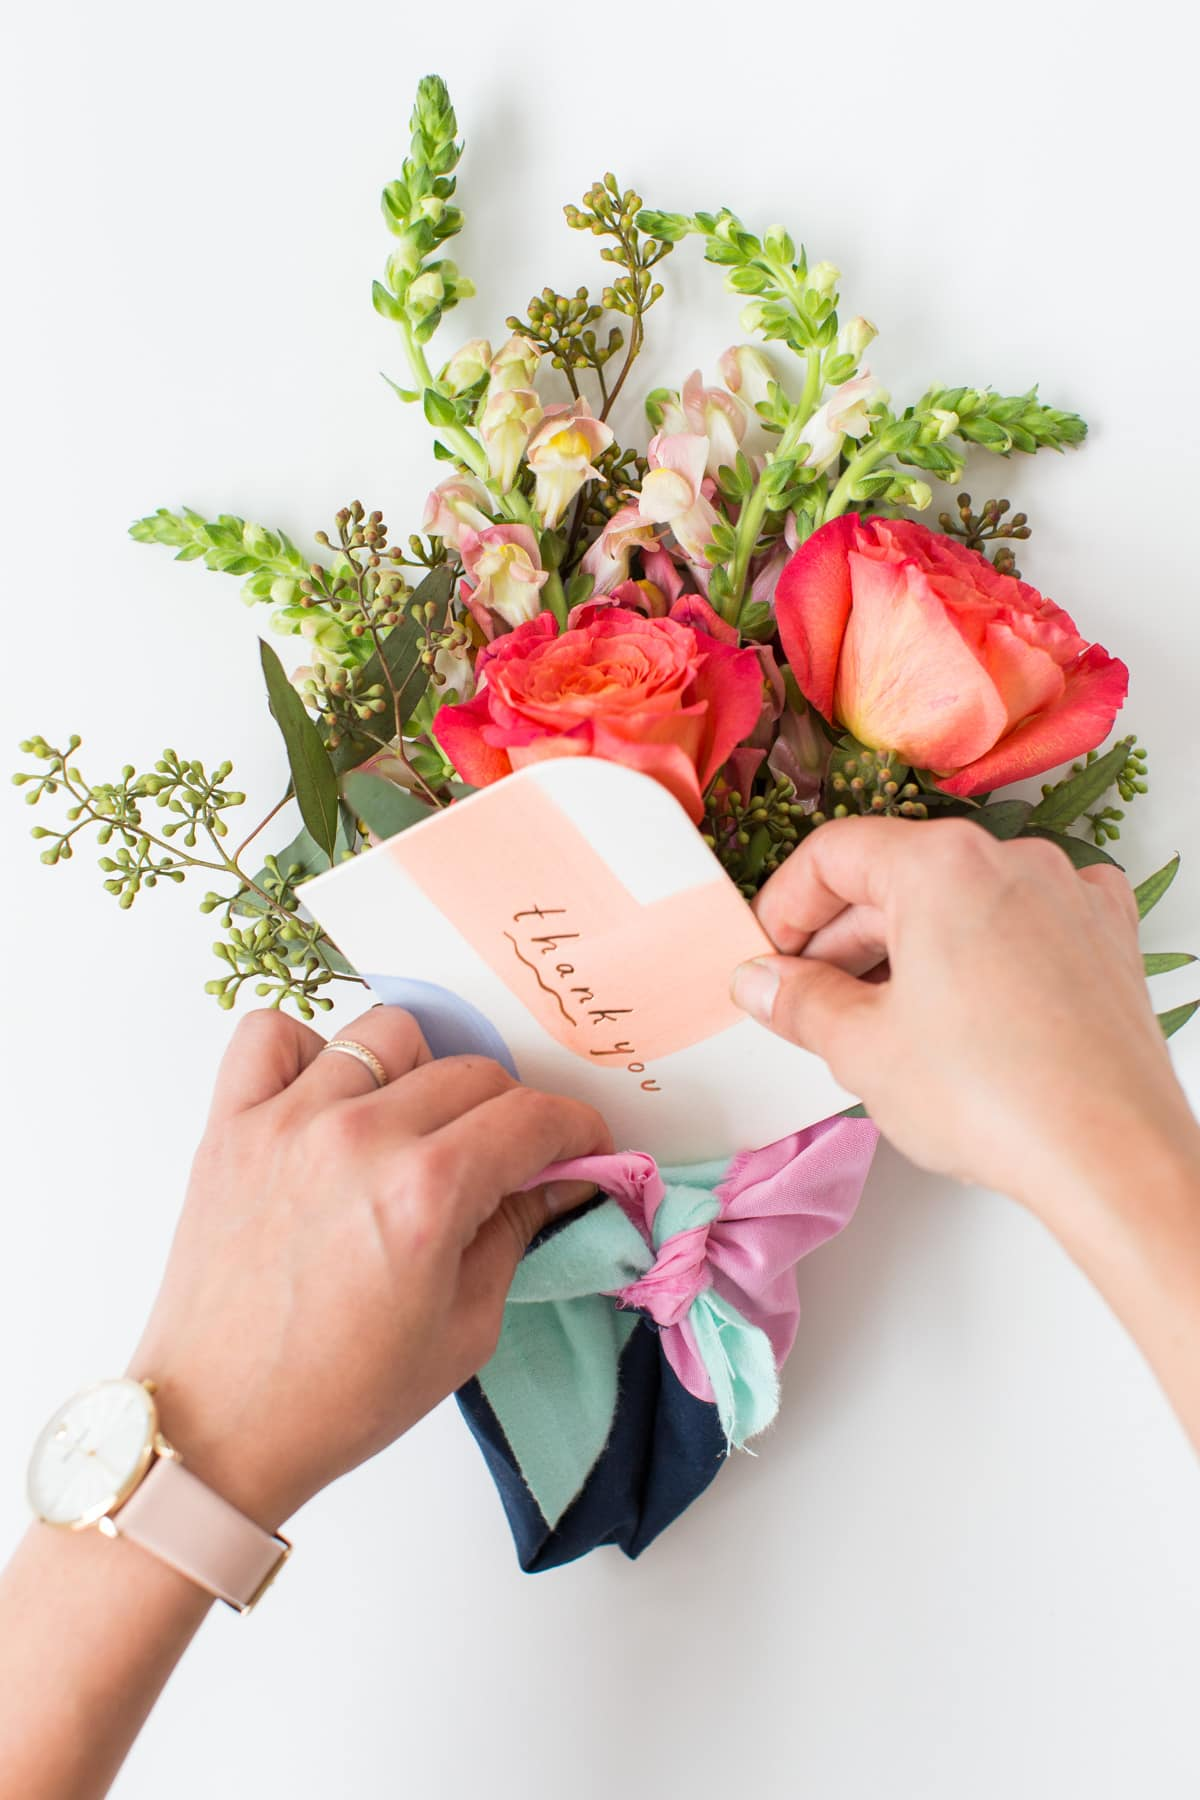 Diy fabric wrapped bouquets for gifting sugar cloth with each watch comes a gilded pin for sharing with a friend which gave me the idea for creating a diy that you could make to go along with your extra izmirmasajfo